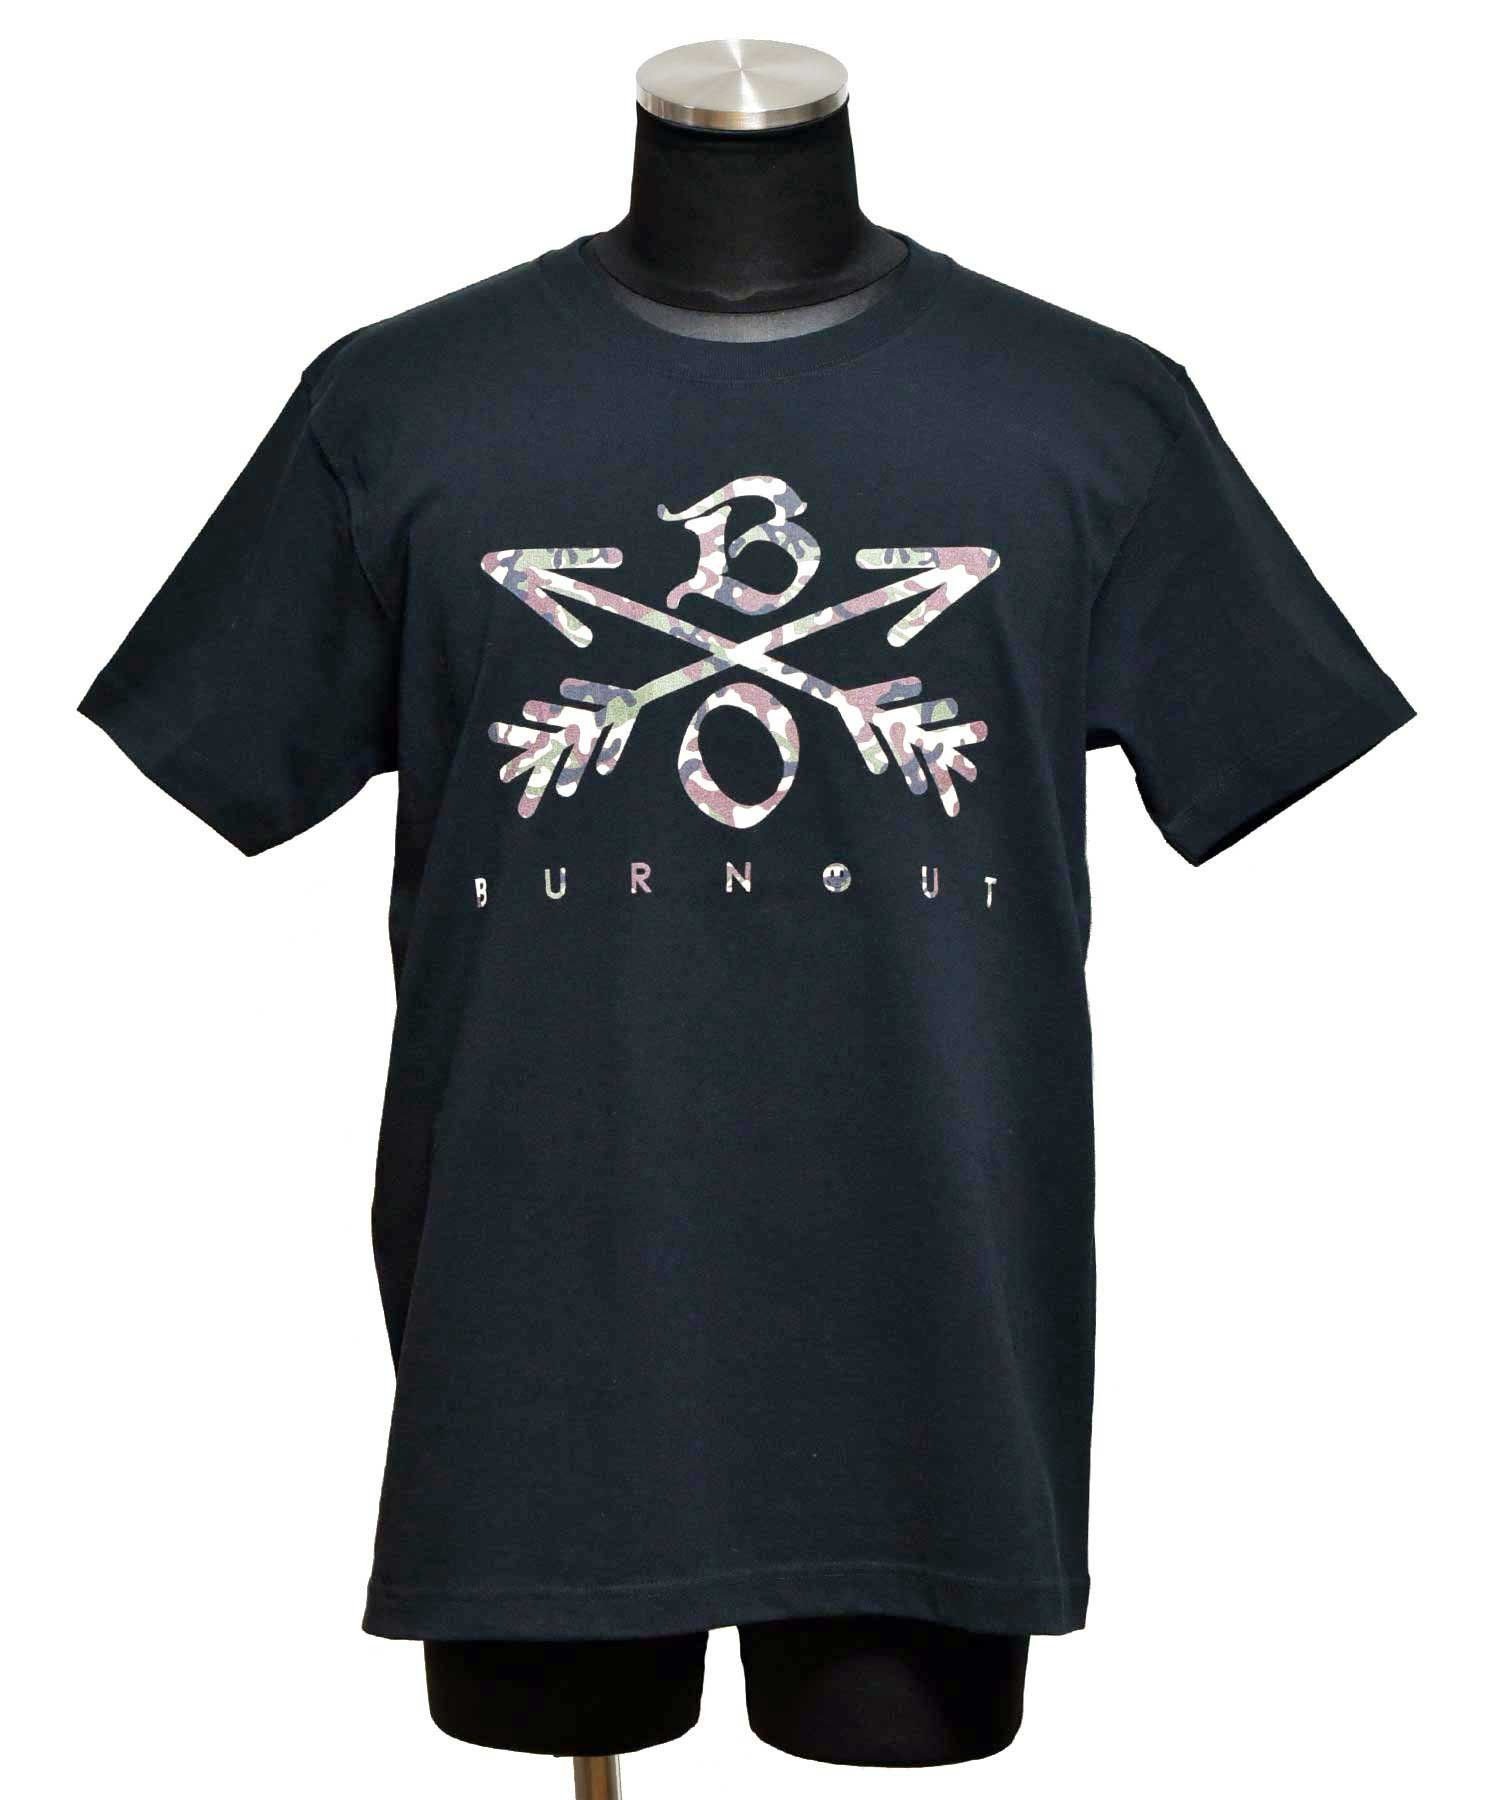 Burnout(バーンアウト) Camouflage Crossed Arrows T-Shirt 2020 / ブラック<img class='new_mark_img2' src='https://img.shop-pro.jp/img/new/icons5.gif' style='border:none;display:inline;margin:0px;padding:0px;width:auto;' />